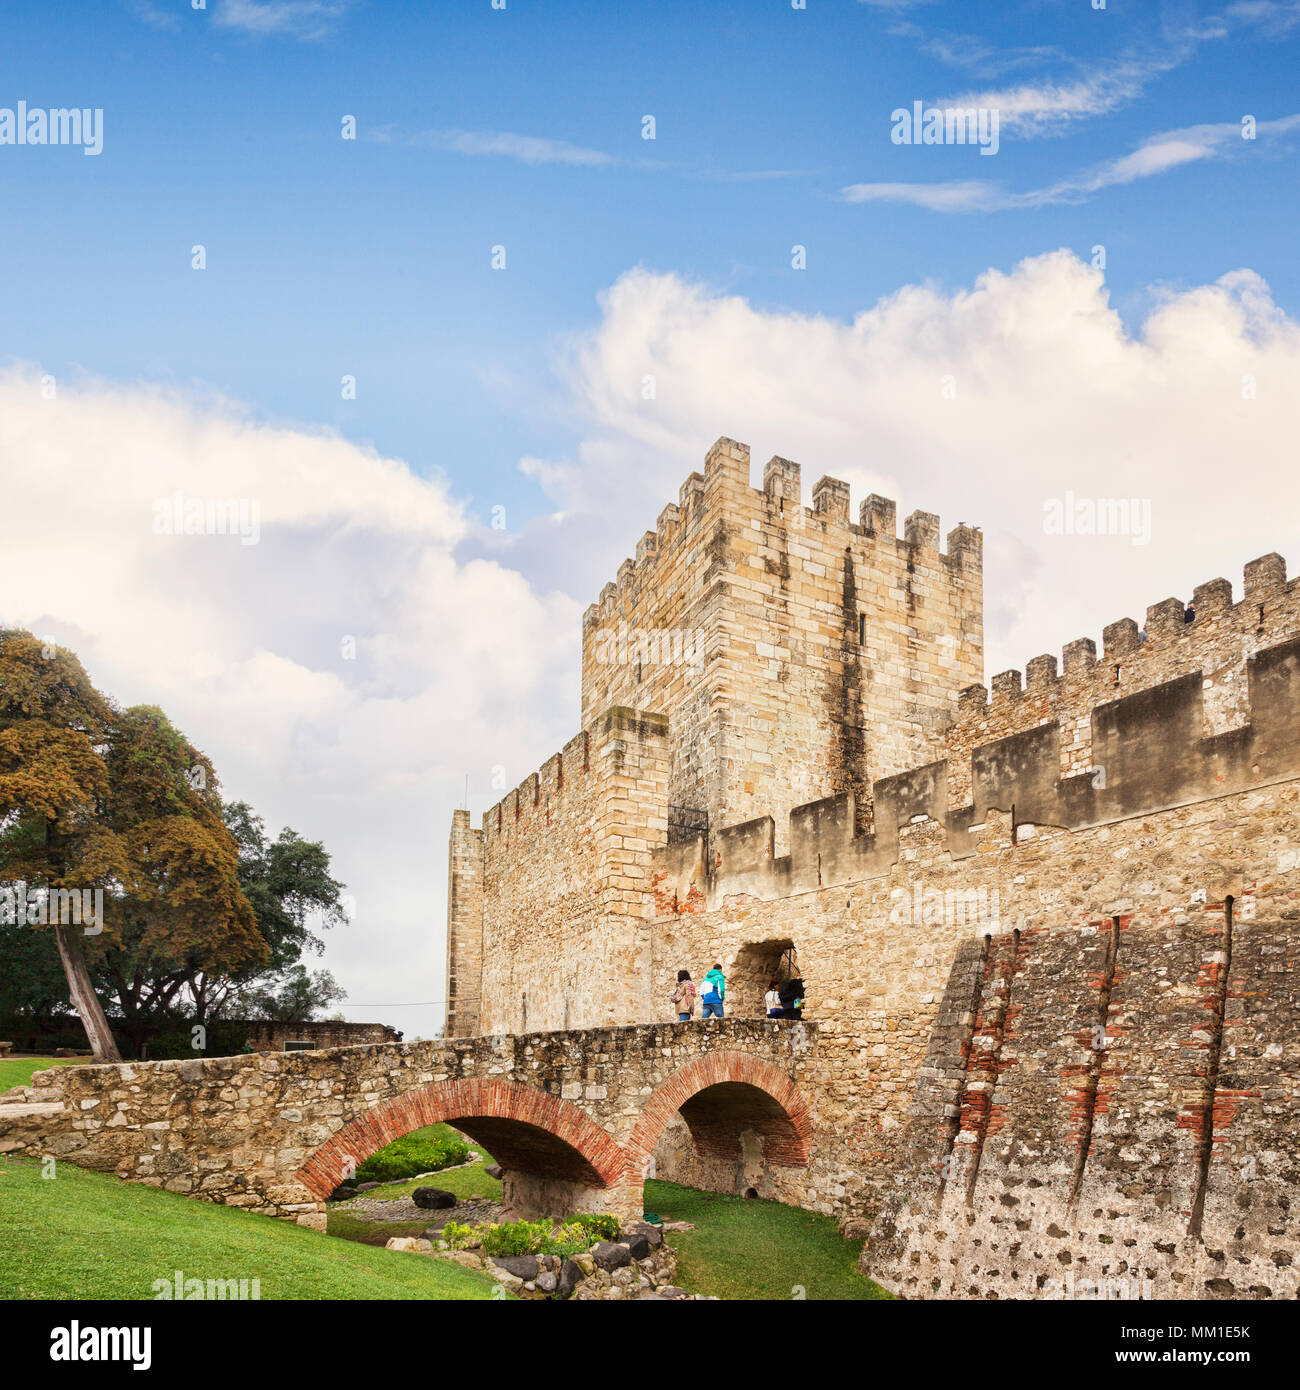 1 March 2018: Lisbon Portugal - Tourist couple crossing bridge to enter Castle of St George. - Stock Image